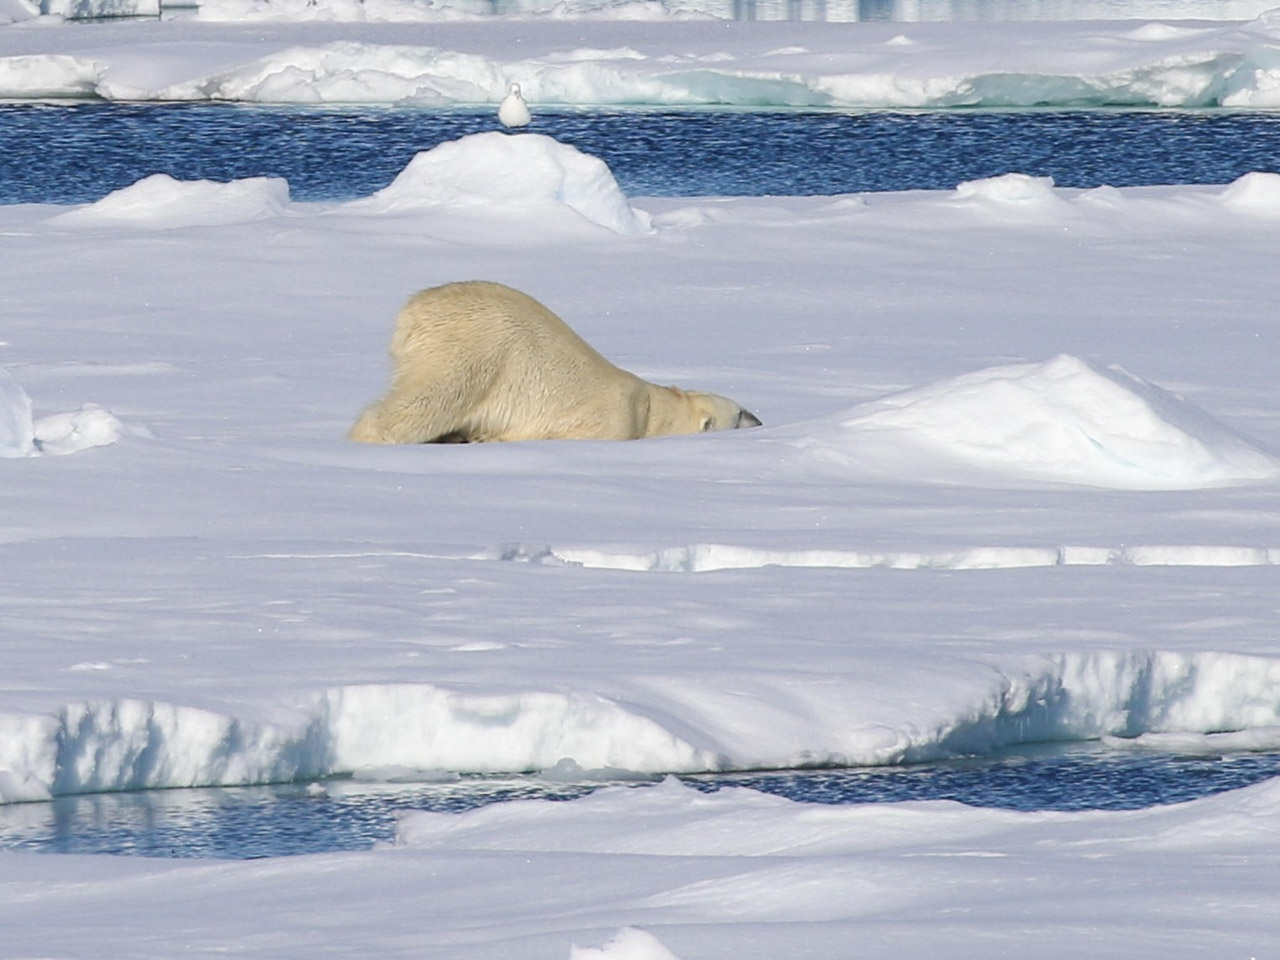 A polar bear rubs its body on the ice as it enjoys the sunshine